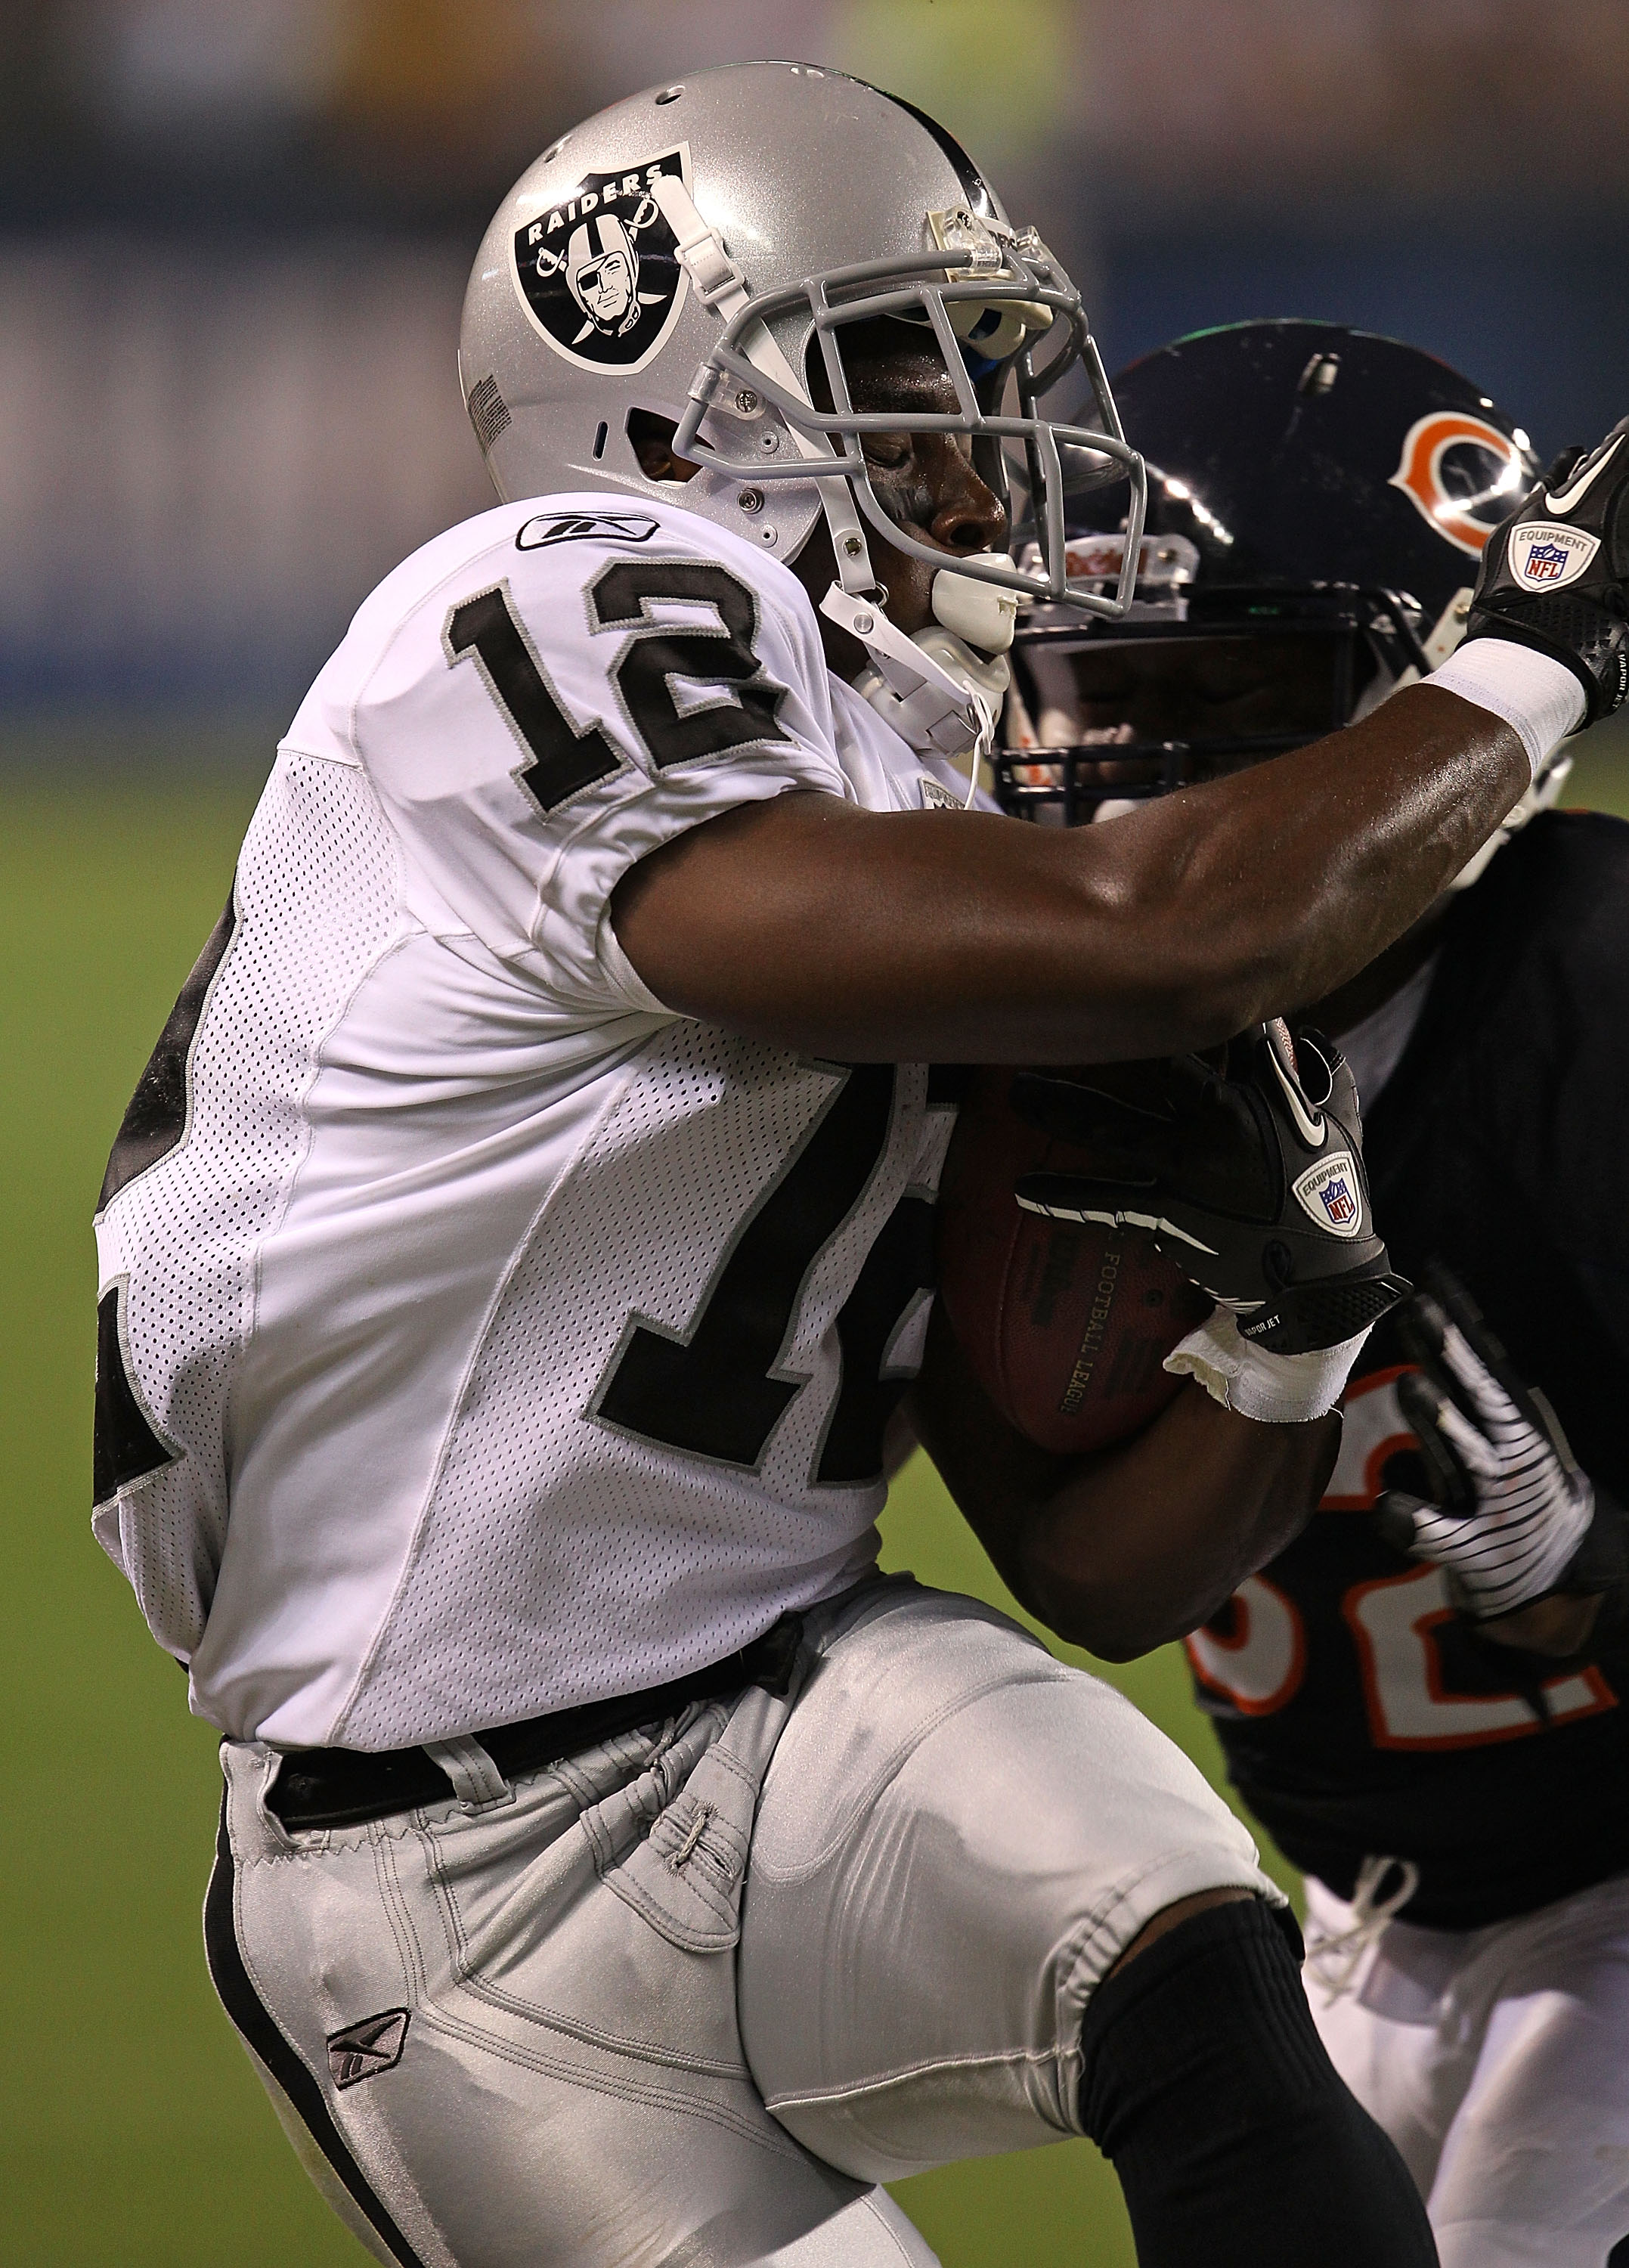 Raiders wide receiver Jacoby Ford